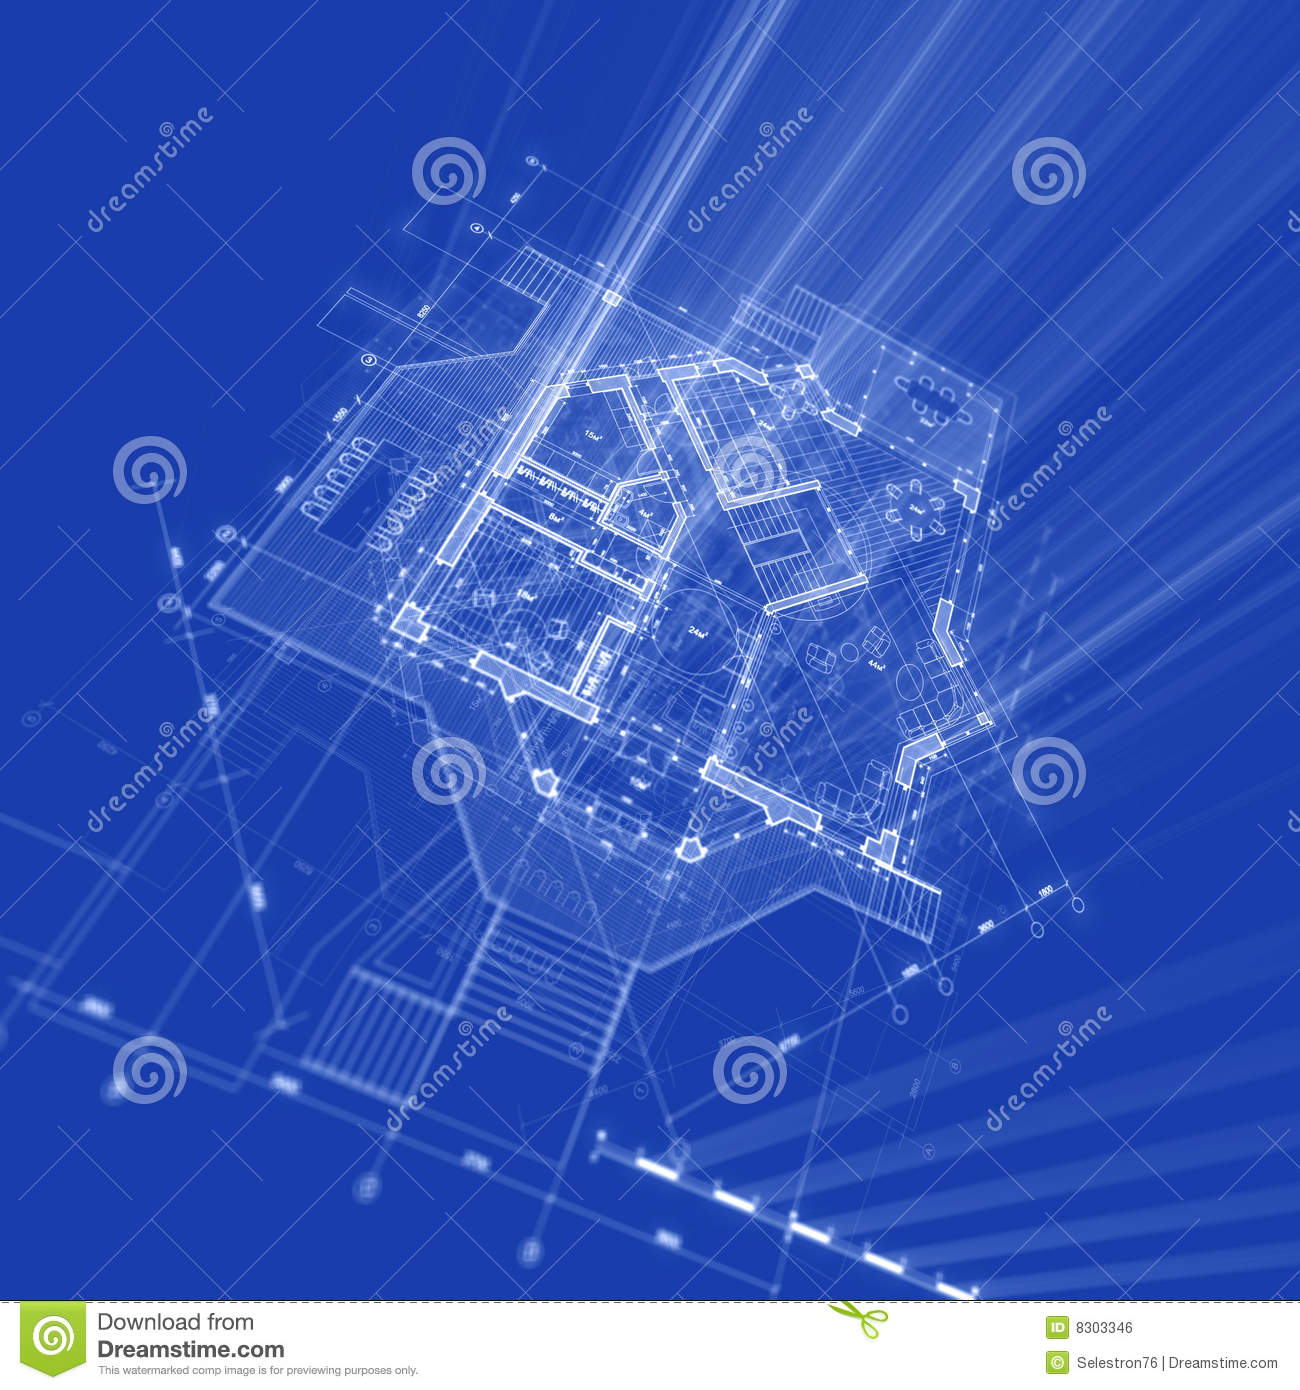 Architecture blueprint stock illustration image of estate for Architecture blueprints